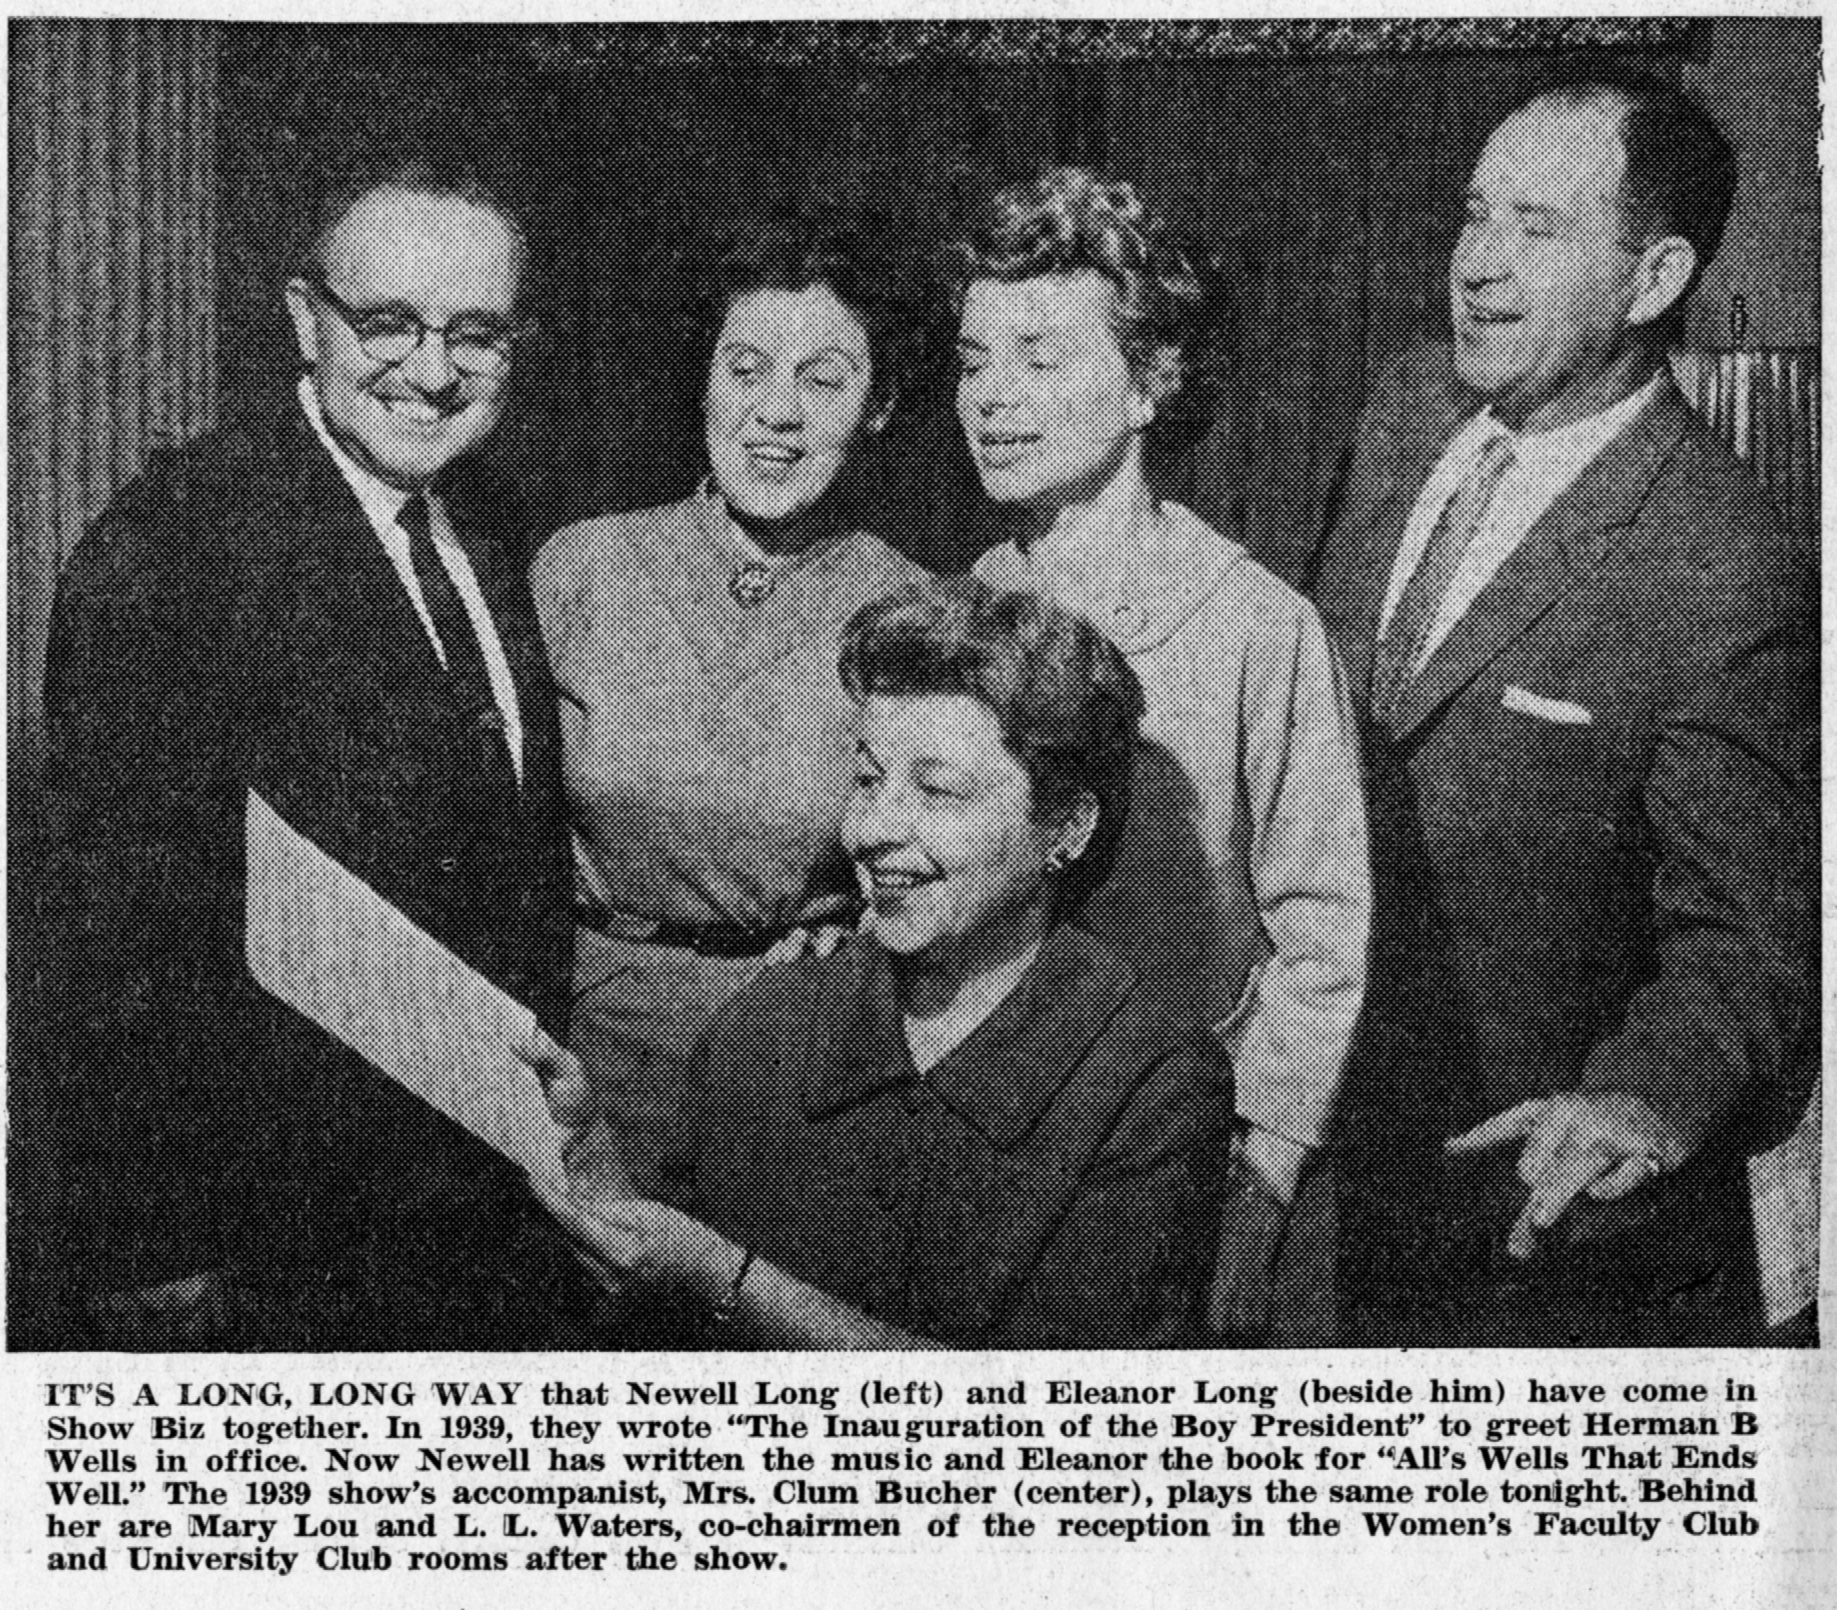 Left to Right: Newell Long, Eleanor Long, Mary Lou Waters, L.L. Water, Mrs. Clum Bucher (Center)